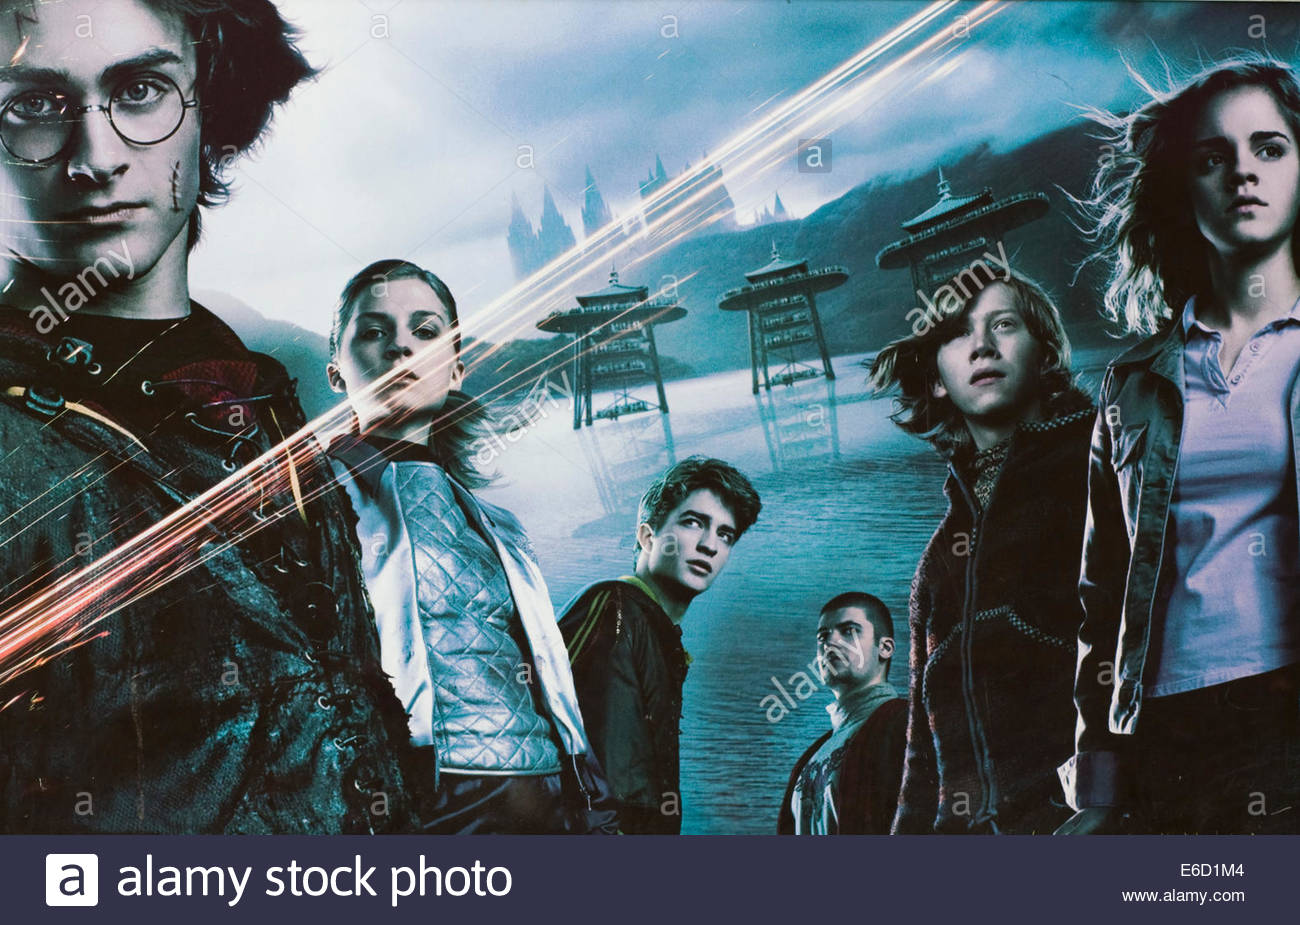 Poster Photos Harry Potter Poster Stock Photos And Harry Potter Poster